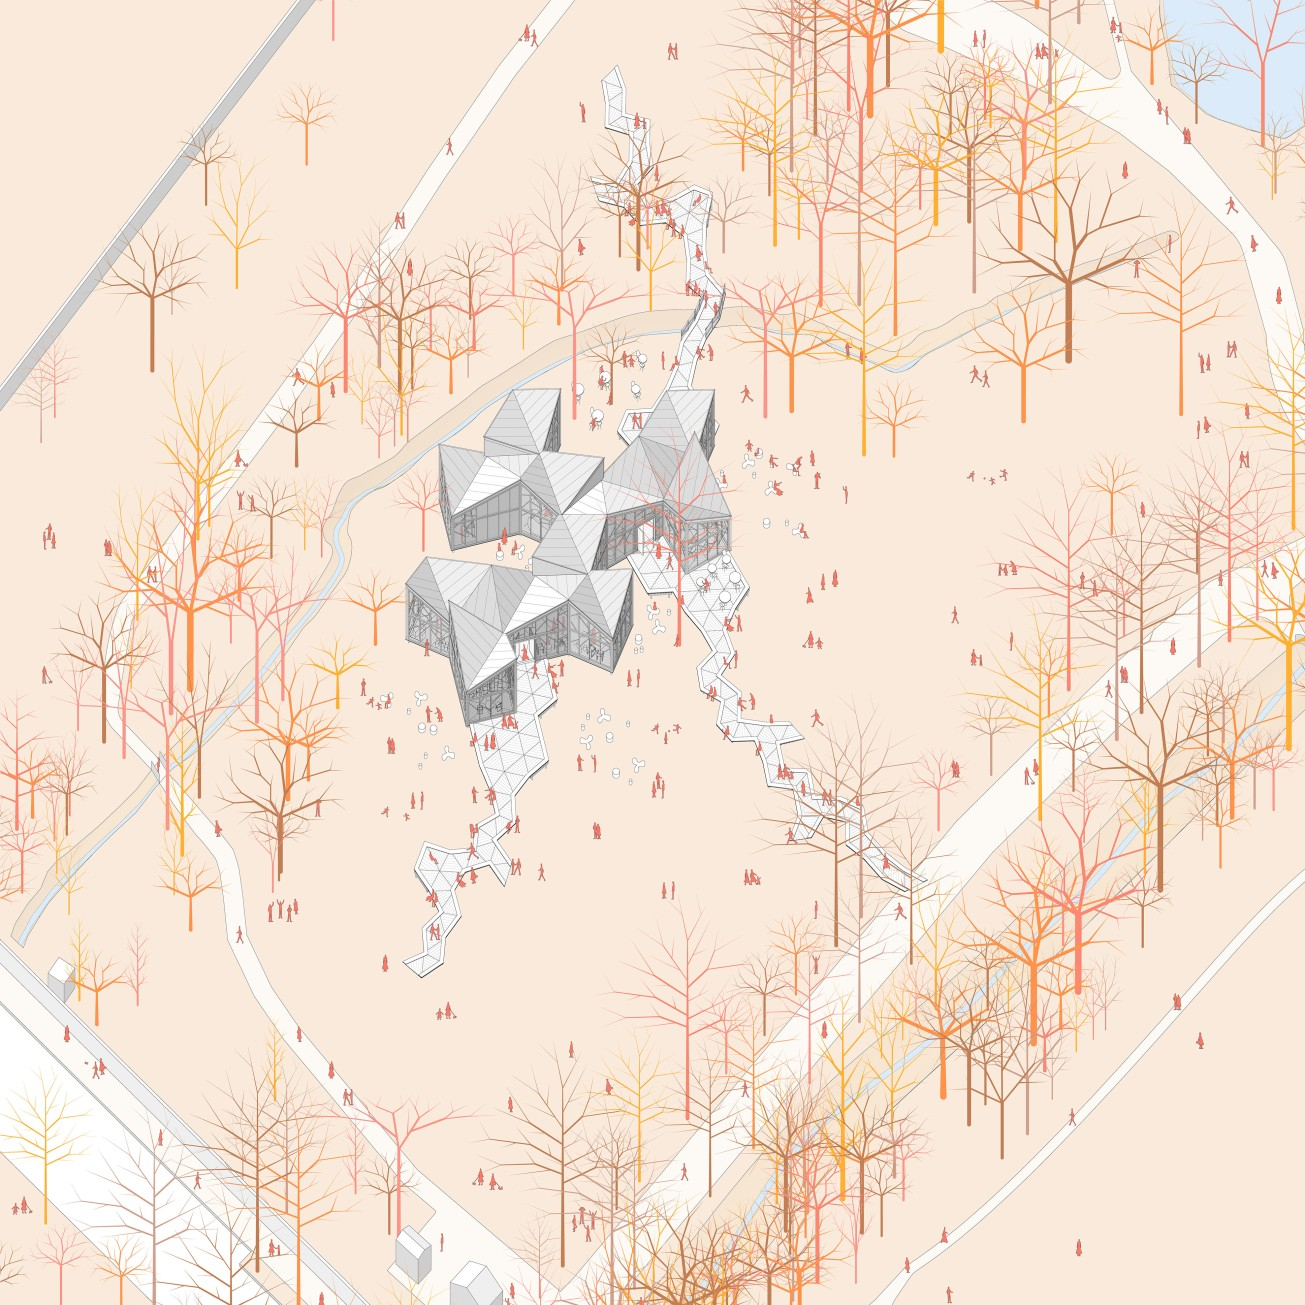 1_MIMESI (axonometry)_Marco Nucifora_2017_Graduation project_University of Florence (Architecture) - Italy